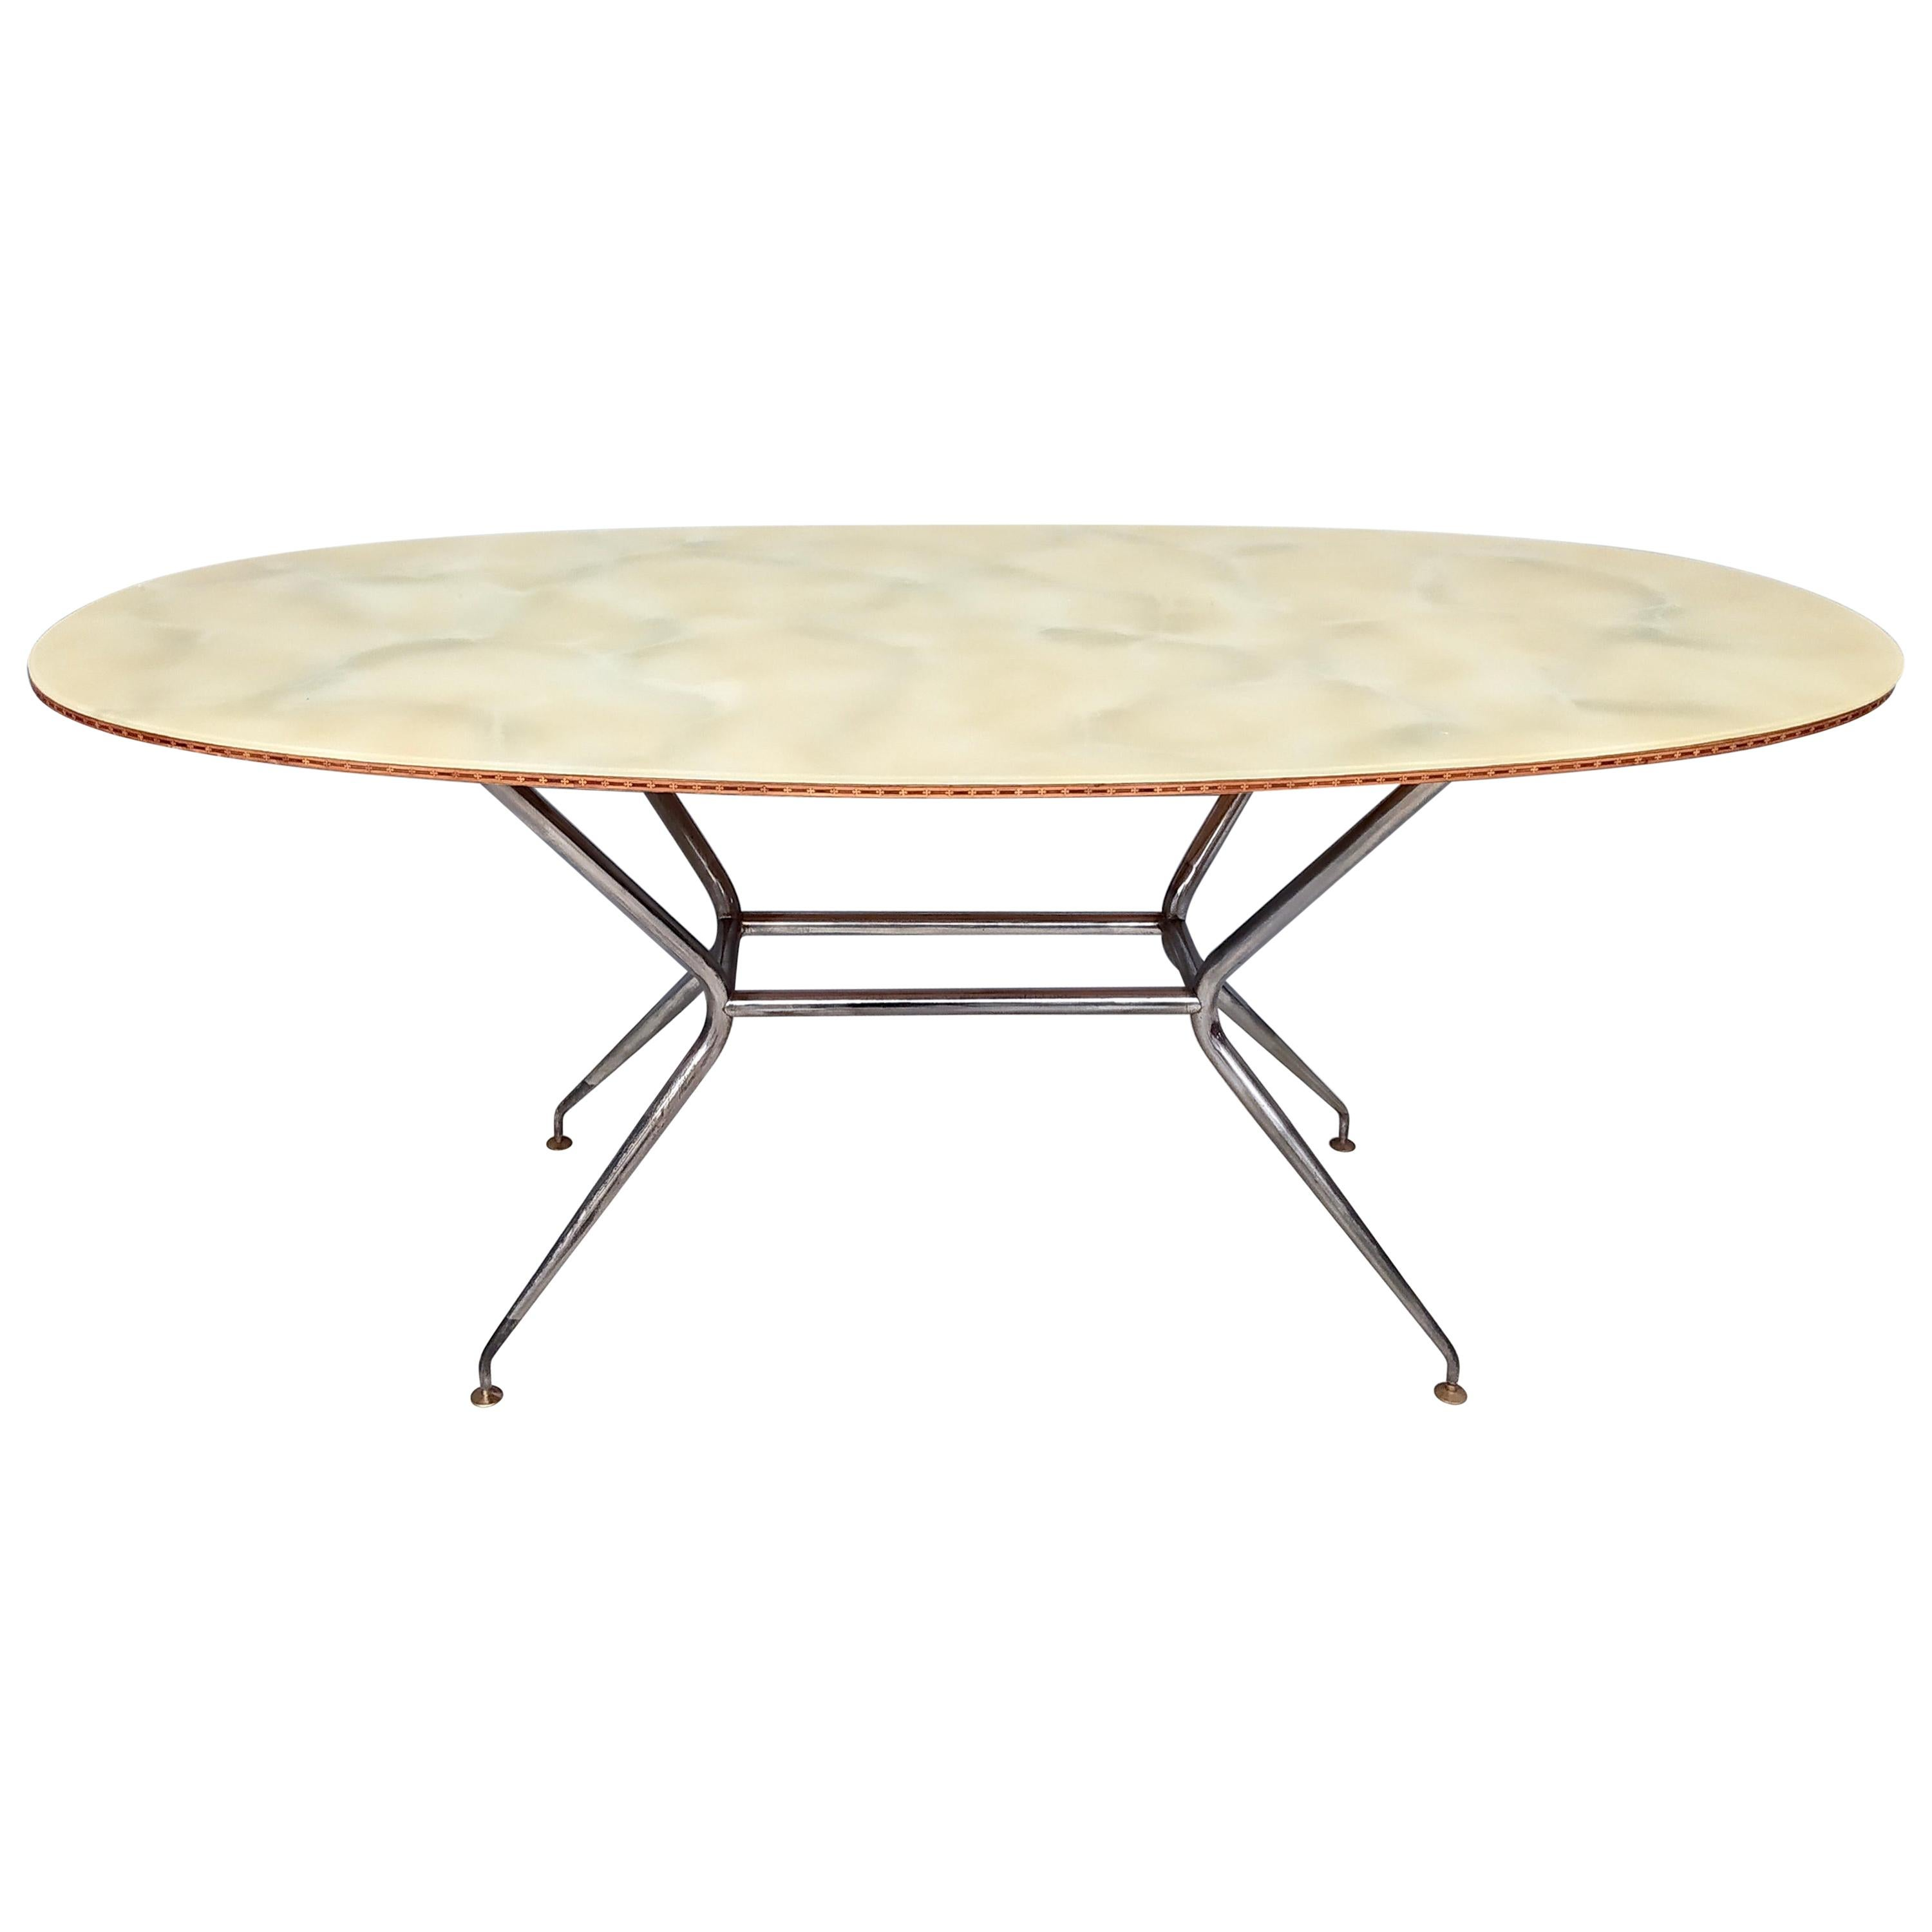 Midcentury Wooden and Iron Dining Table with a Glass Top, Italy